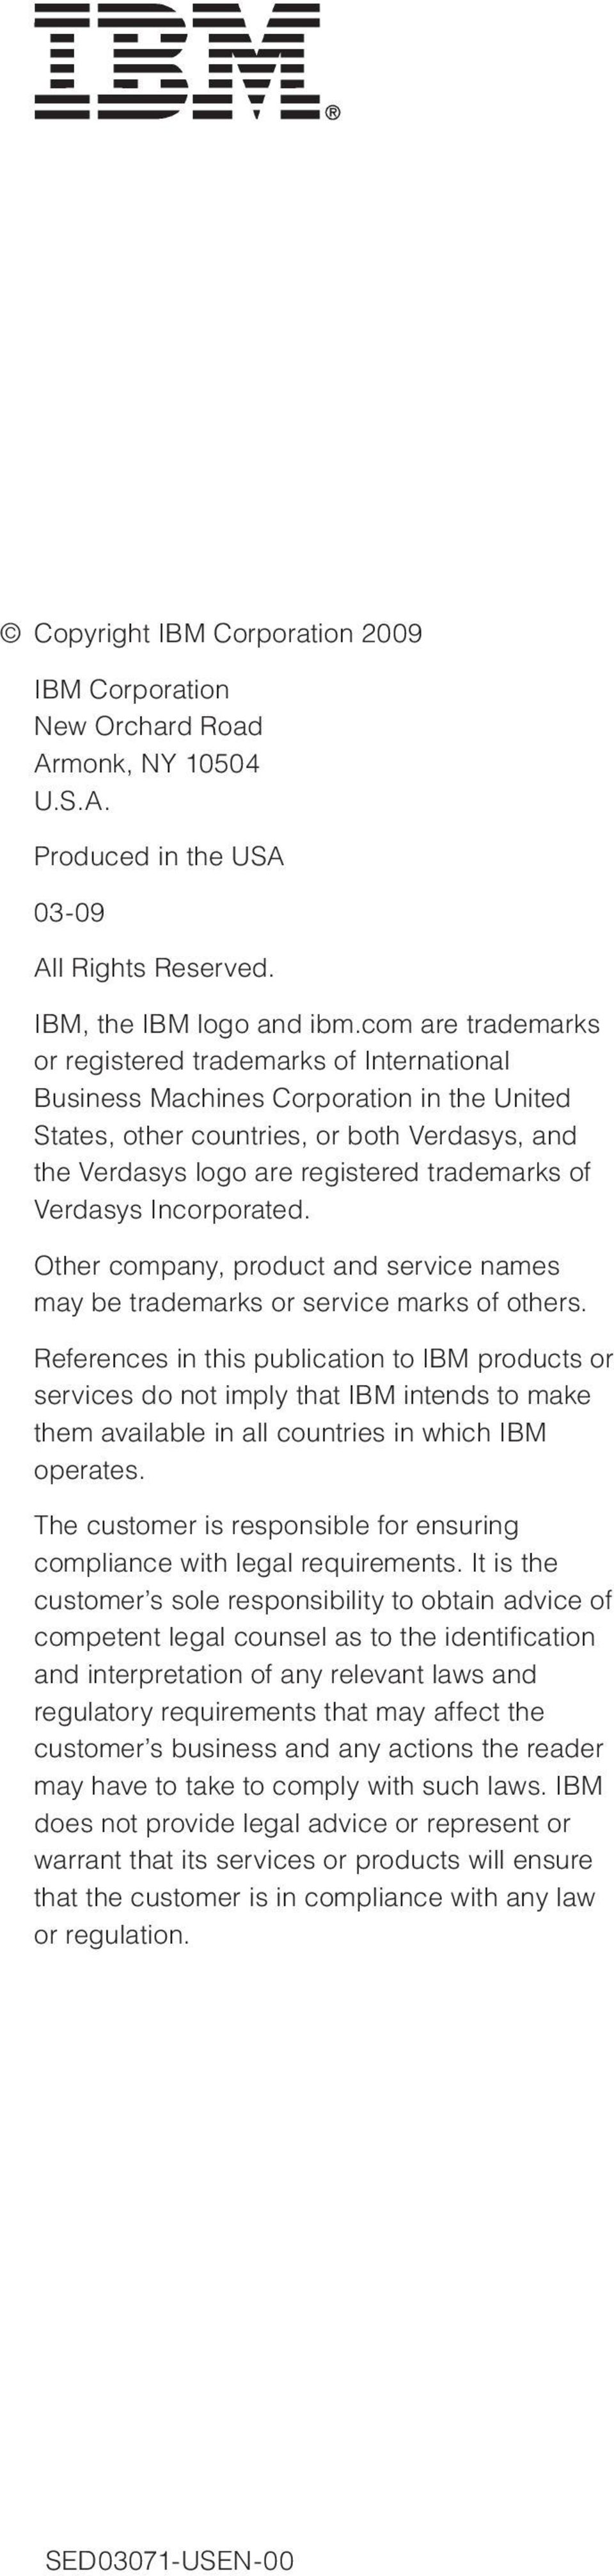 Verdasys Incorporated. Other company, product and service names may be trademarks or service marks of others.